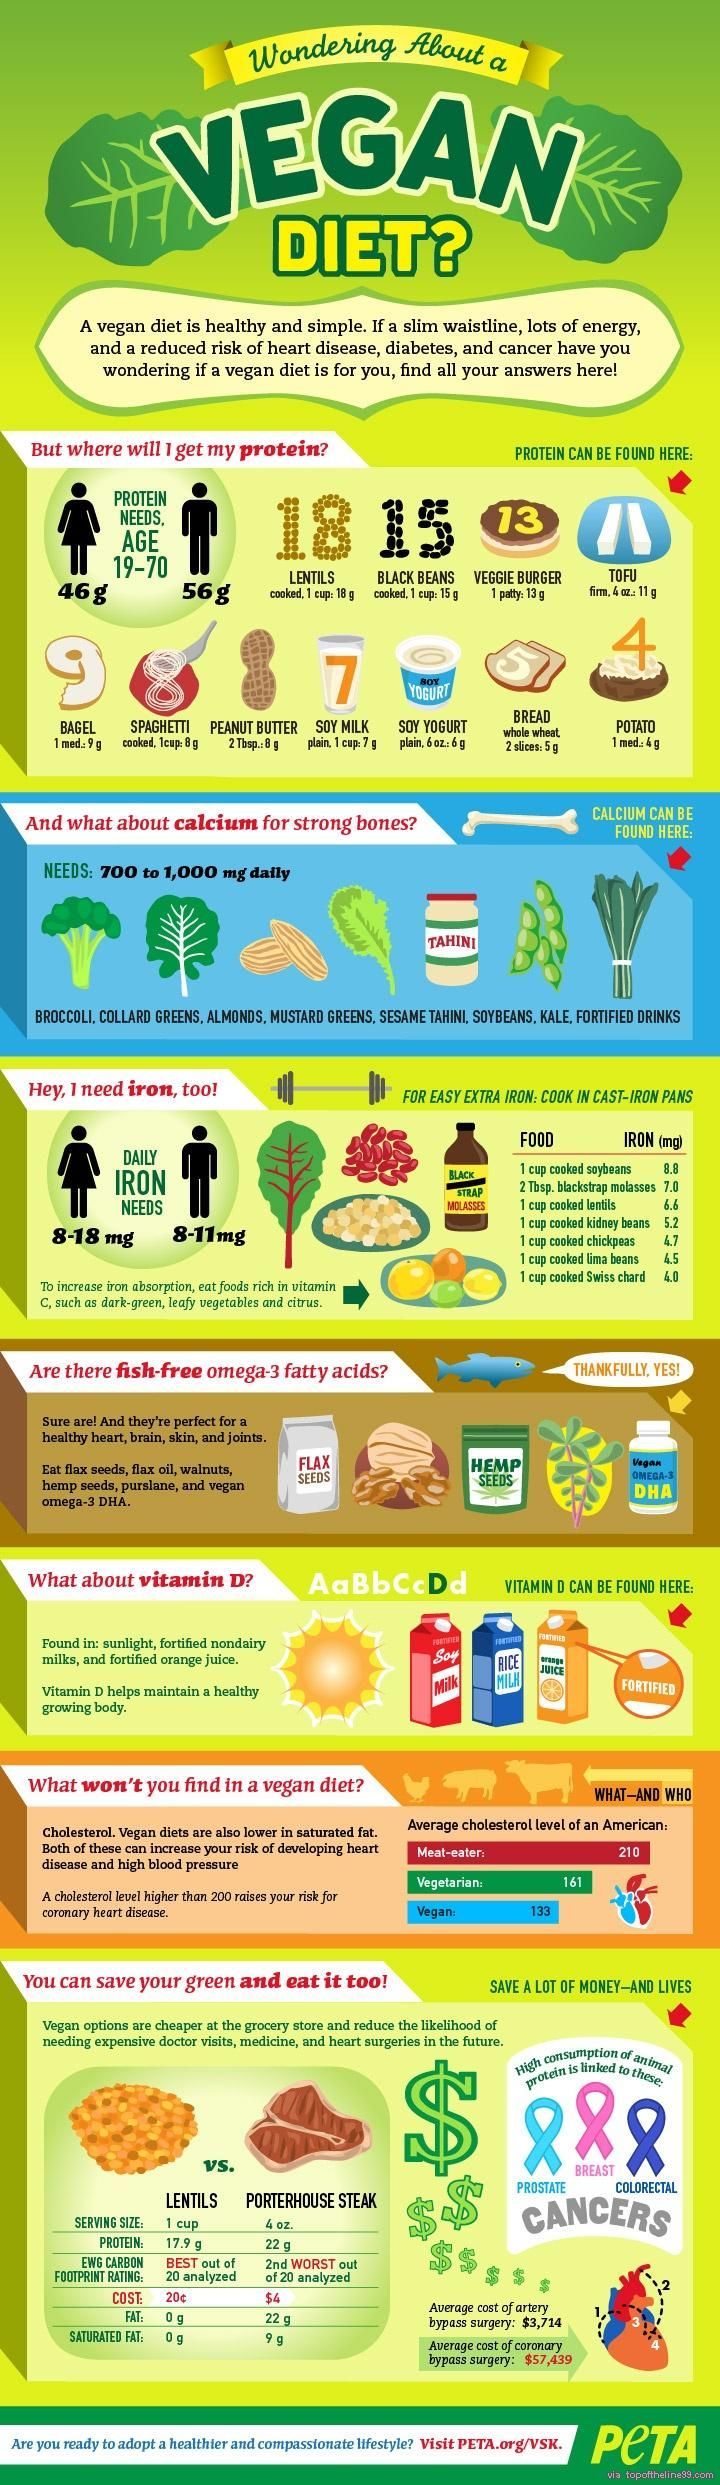 Wondering About a Vegan Diet? This chart shows plant based sources of protein, calcium, iron and omega-3 fatty acids. Great resource!